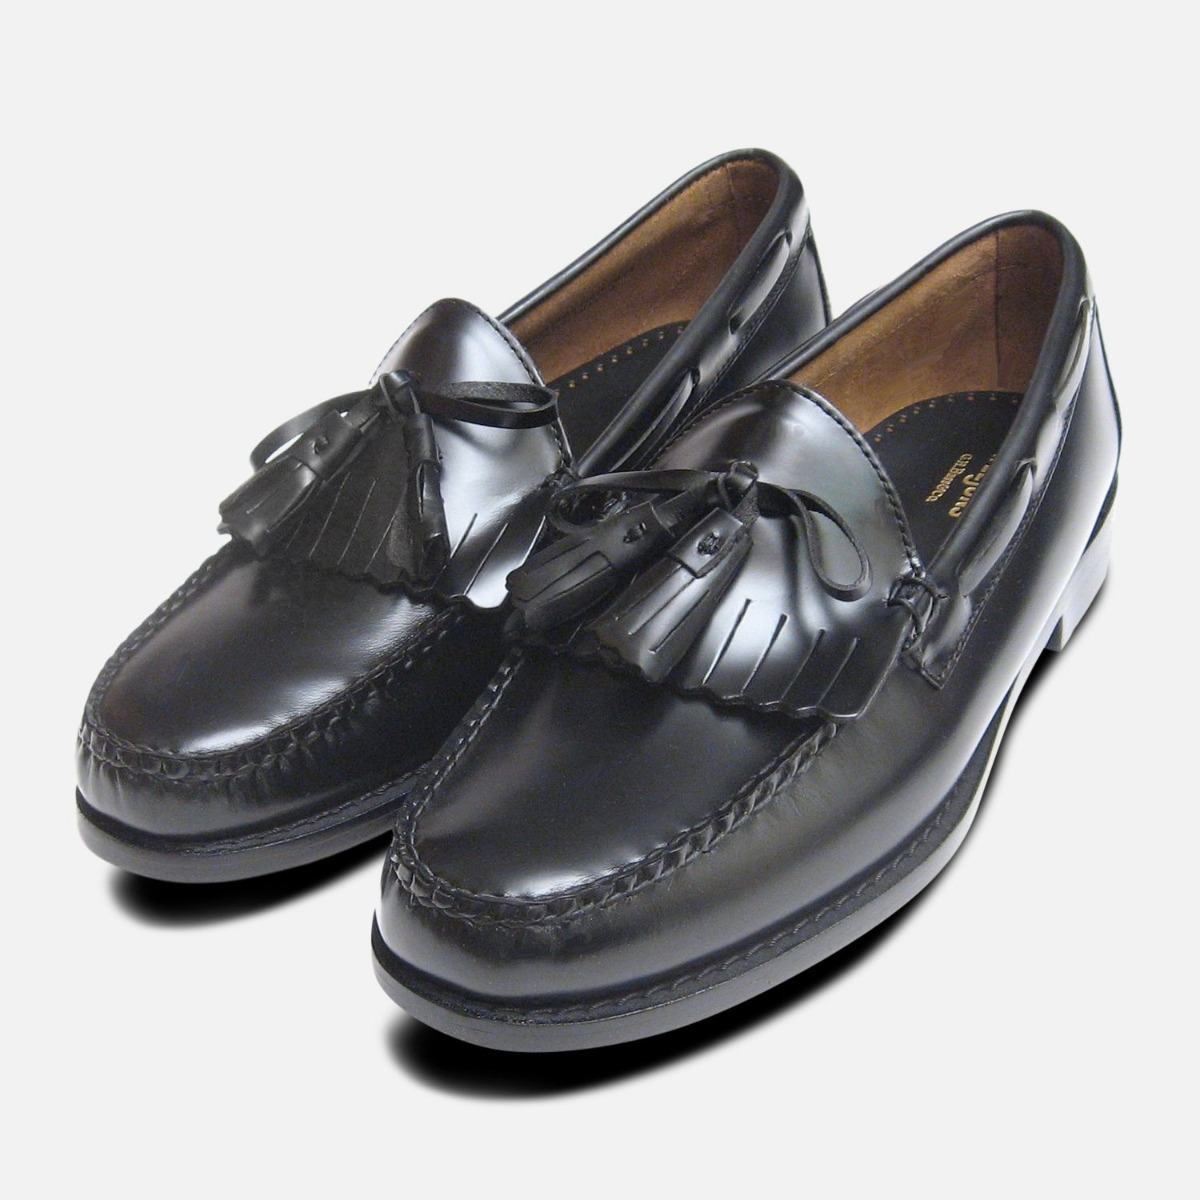 Tassel Loafers by Bass Weejuns